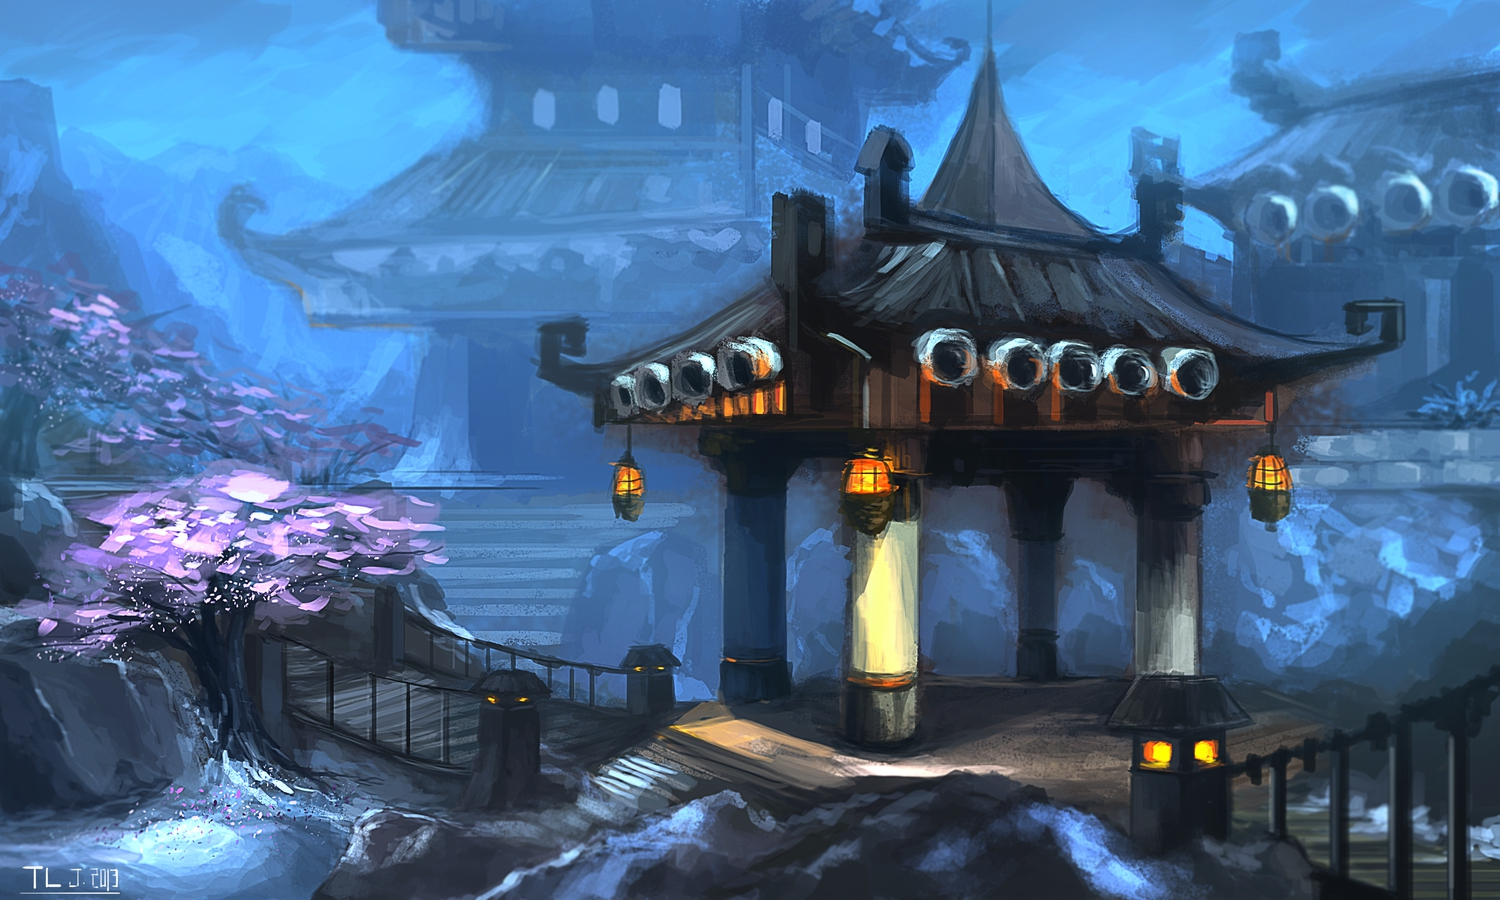 cherry_blossoms flowers landscape nobody scenic signed snow tlrose world_of_warcraft